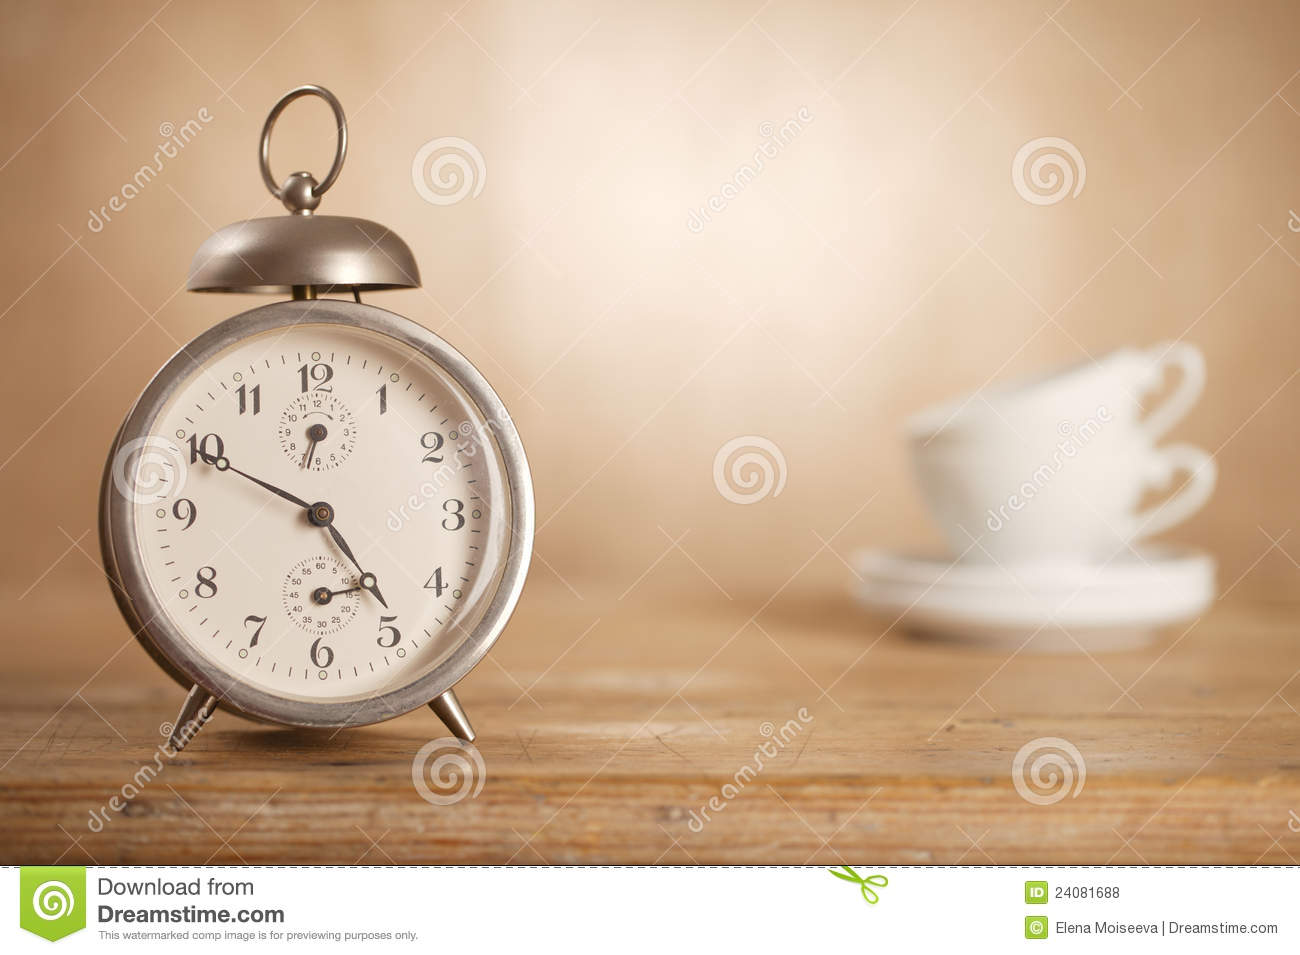 Royalty Free Stock Photos 5 O Clock Tea Time Retro Alarm White Tea Cups Image24081688 on alarm clock wallpaper